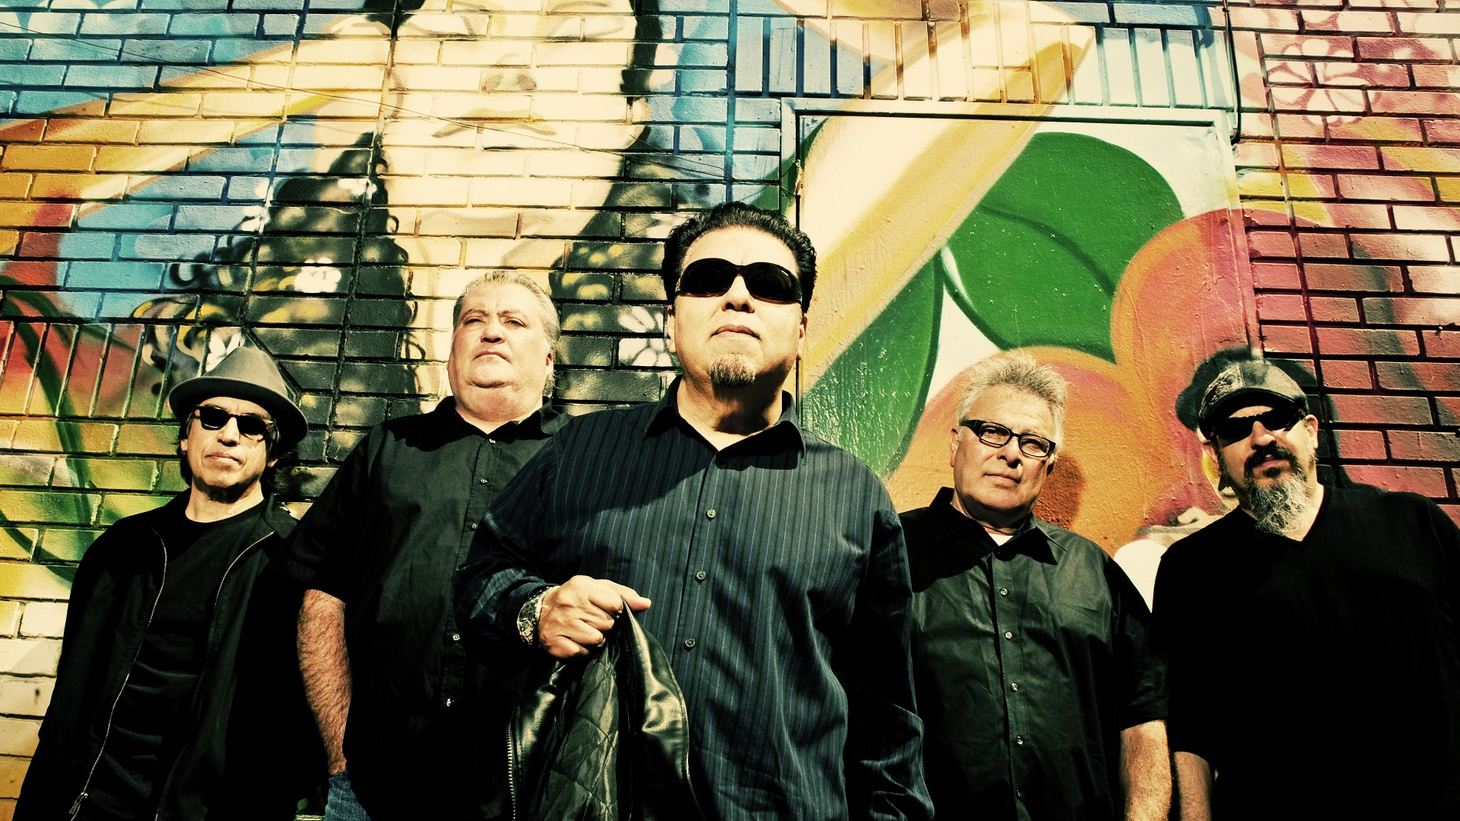 East L.A. favorites Los Lobos return to KCRW studios to perform an array of songs spanning their award-winning 40 year career on Morning Becomes Eclectic at 11:15am.